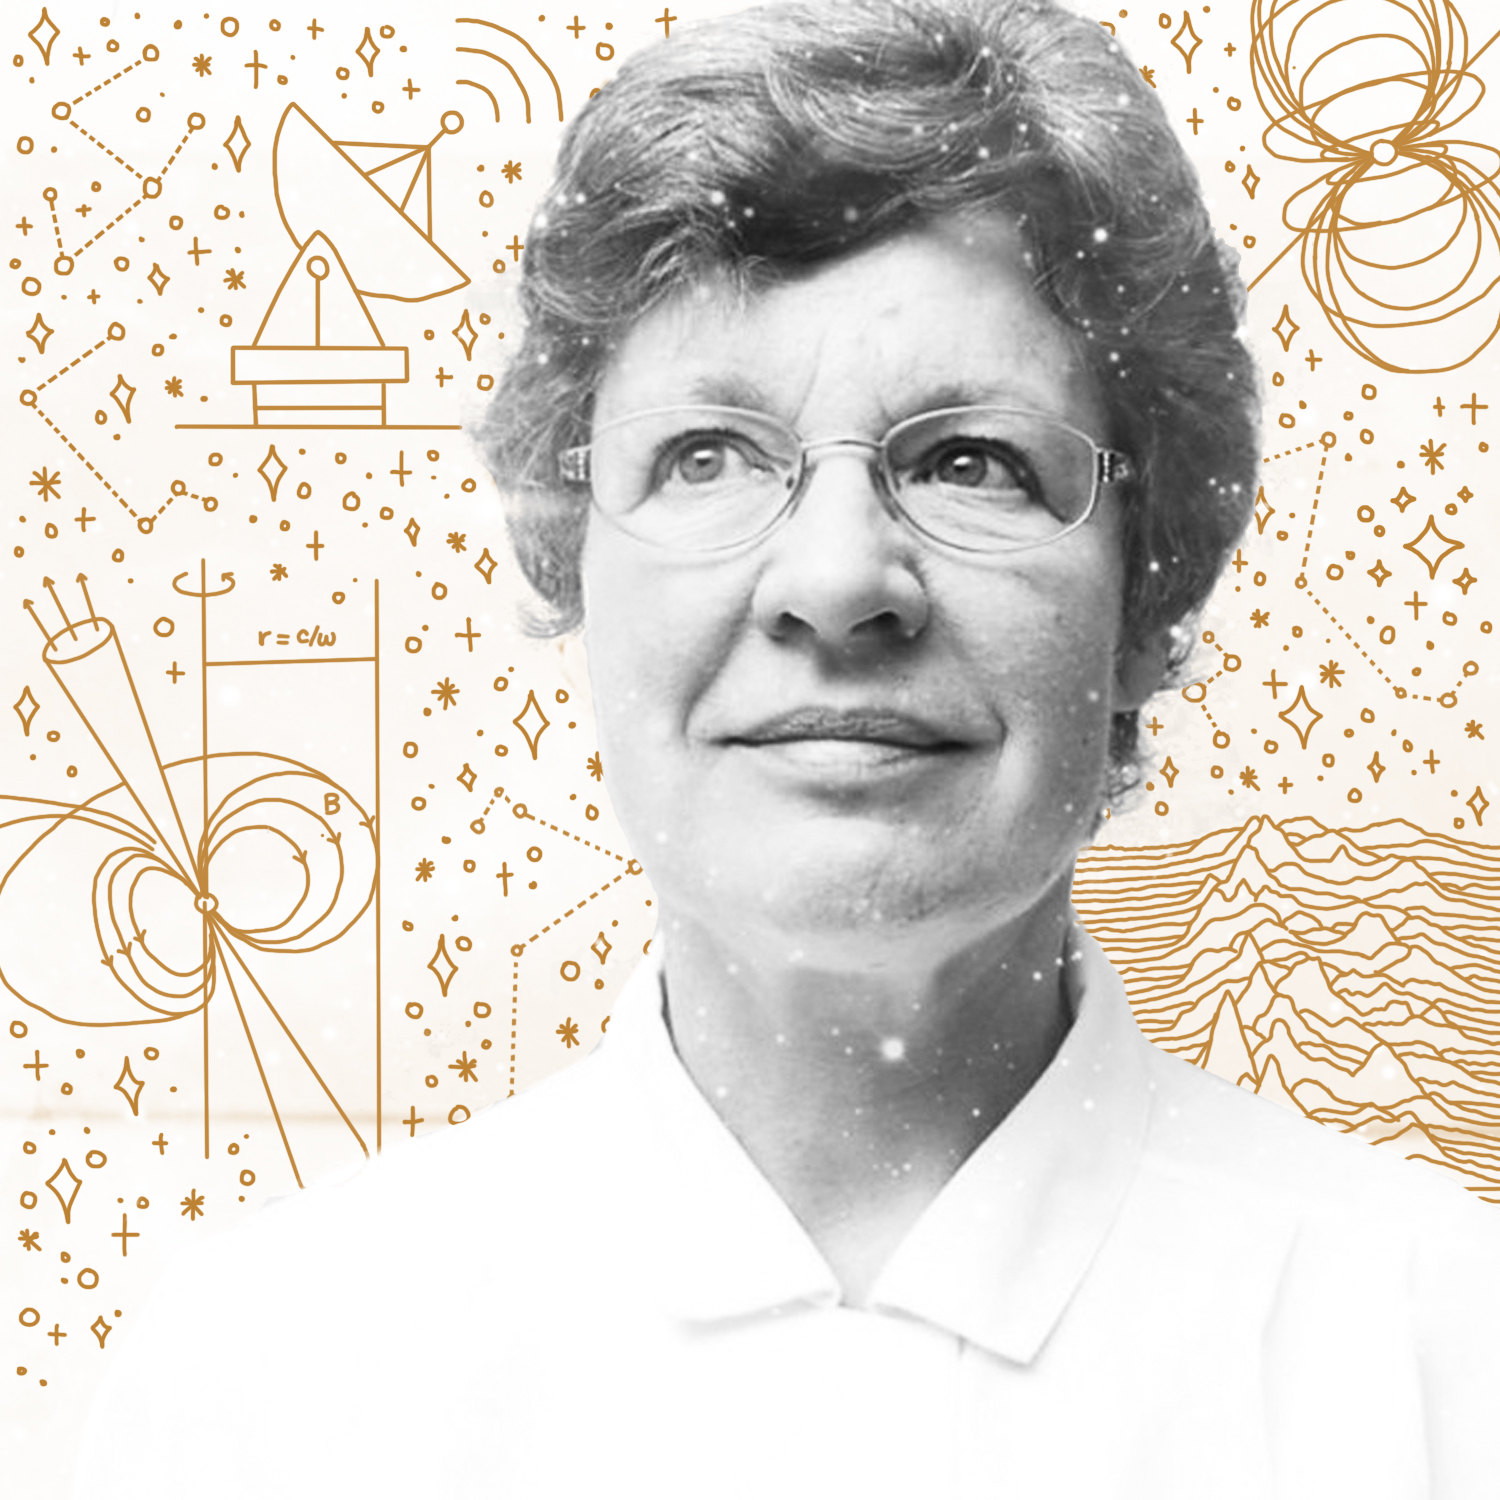 """Jocelyn Bell Burnell   Jocelyn Bell Burnell is an astrophysicist credited with """"one of the most significant scientific achievements of the 20th Century."""" As a postgraduate student, she discovered the first radio pulsars in 1967. The discovery was recognised by the award of the Nobel Prize in Physics to her thesis supervisor Anthony Hewish and to the astronomer Martin Ryle. Bell was excluded, despite having been the first to observe and precisely analyse the pulsars. For her part, Bell declined to cause a fuss, saying that she was simply glad to have played a part in the first Nobel awarded for astrophysics."""